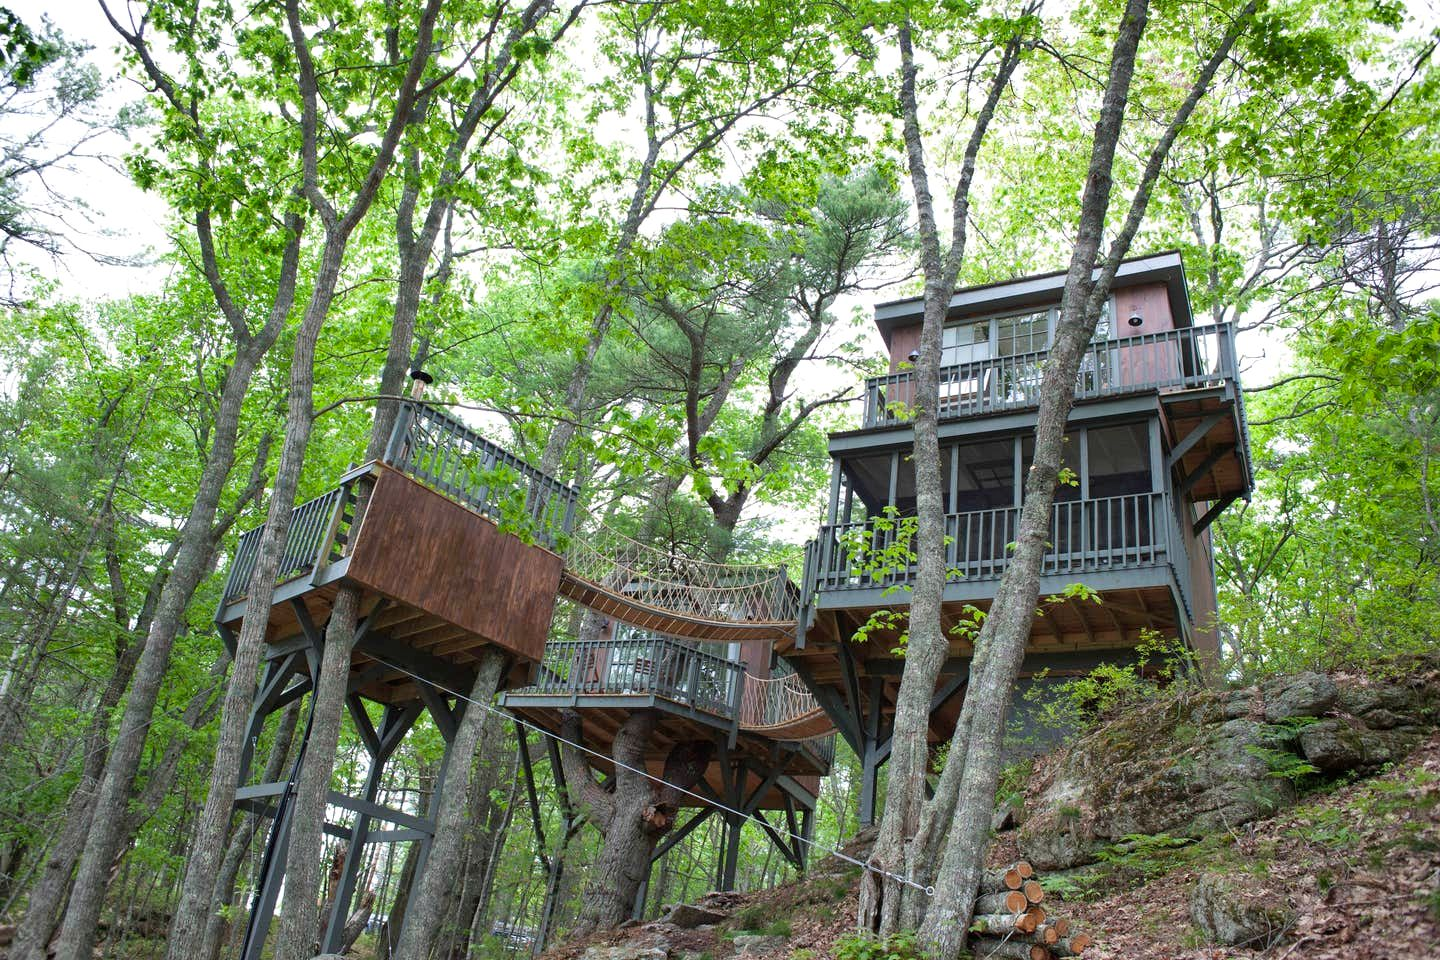 Treehouse village in Georgetown, Maine.